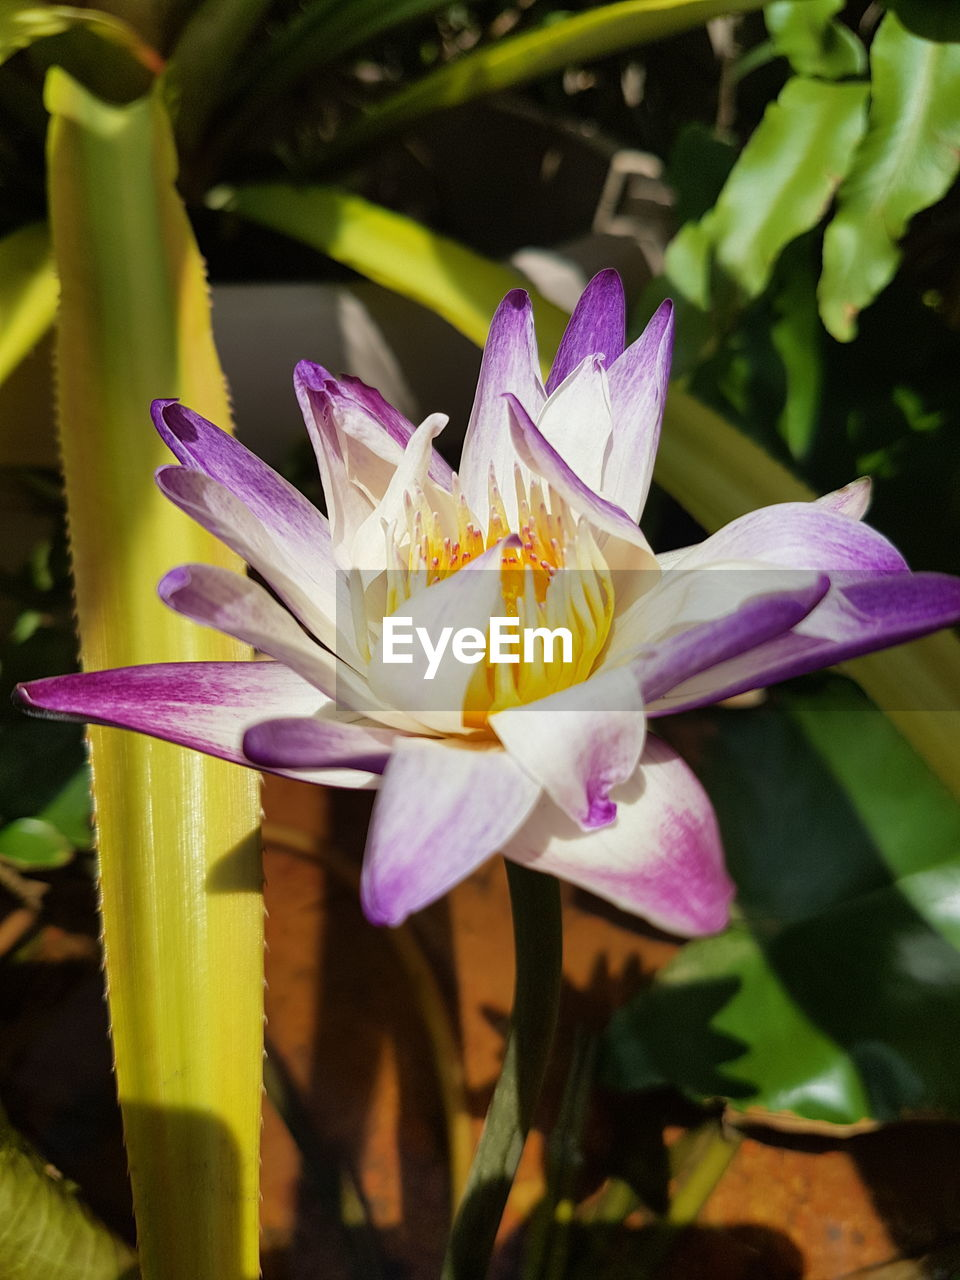 flowering plant, flower, petal, freshness, plant, vulnerability, fragility, beauty in nature, growth, flower head, inflorescence, close-up, purple, water lily, nature, no people, day, leaf, pollen, focus on foreground, iris, outdoors, springtime, lotus water lily, crocus